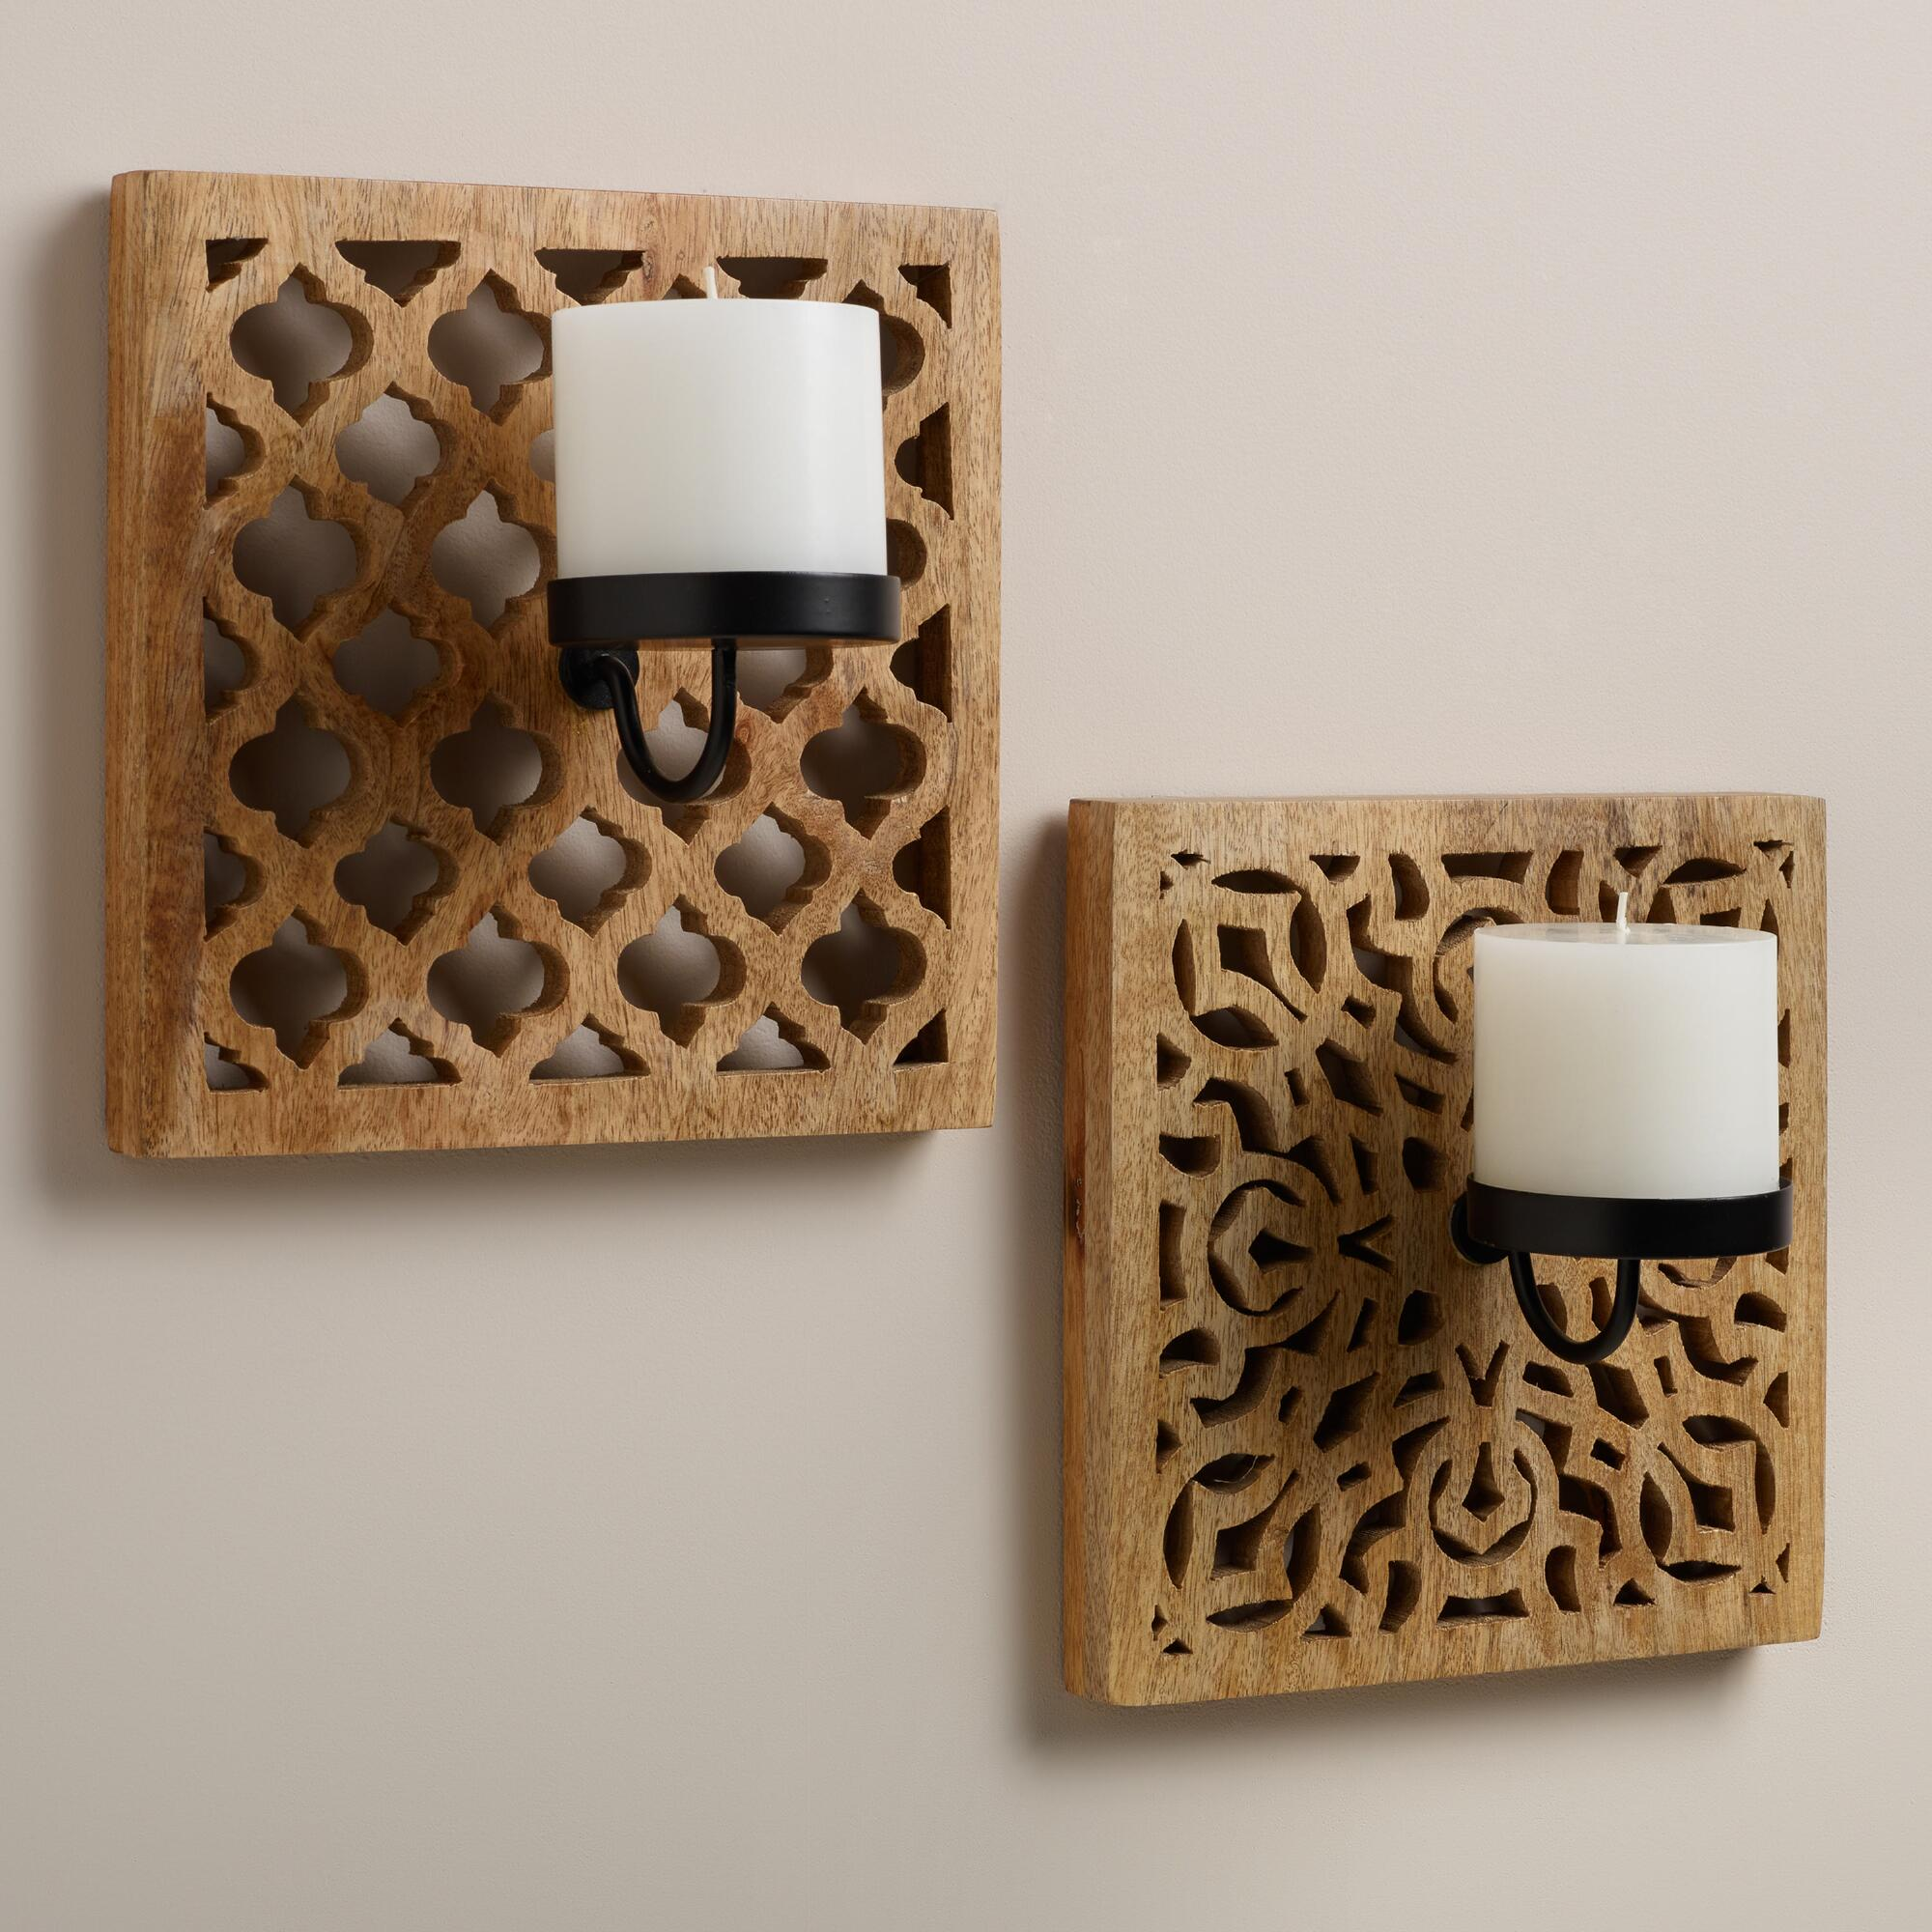 Carved Wood Wall Sconce Candleholders, Set of 2 World Market